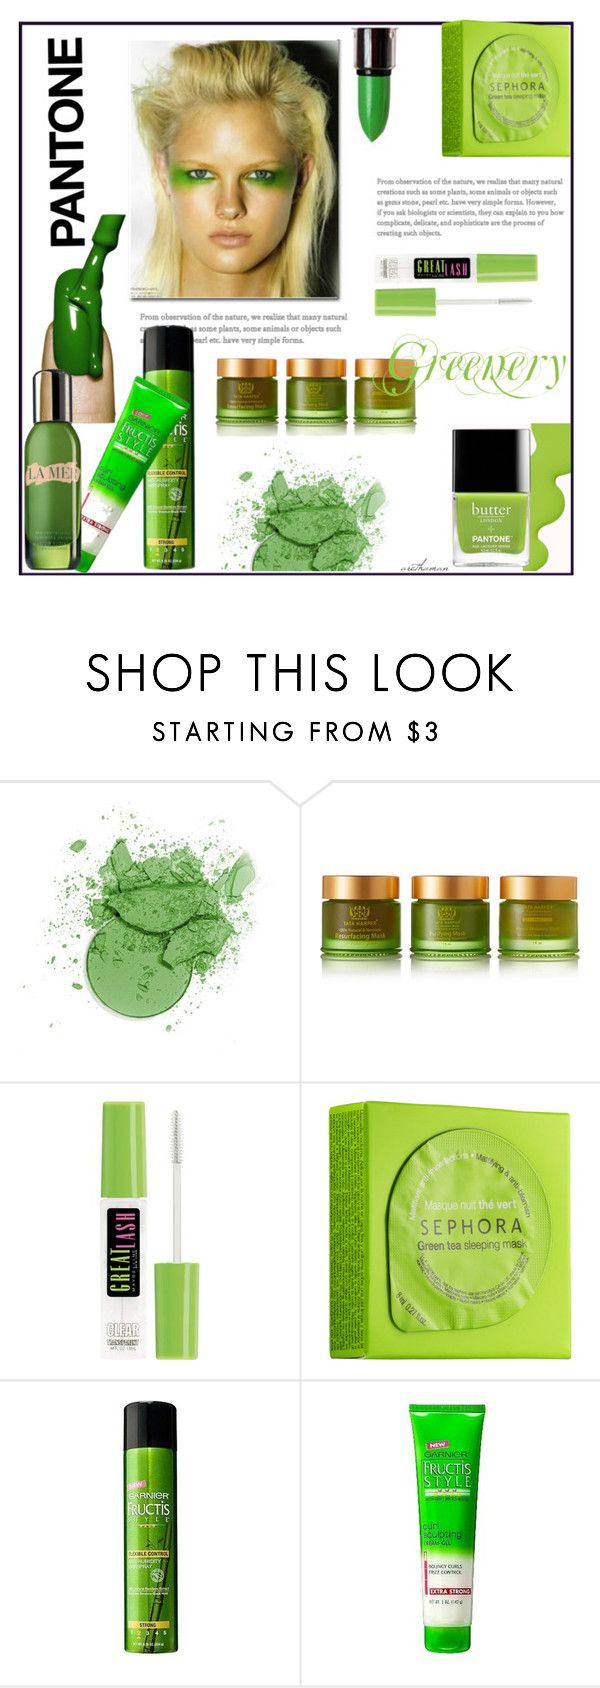 """""""Greenery Beauty"""" by arethaman ❤ liked on Polyvore featuring beauty, Tata Harper, Butter London, Maybelline, Sephora Collection, Garnier, NYX, La Mer, Beauty and greenery"""